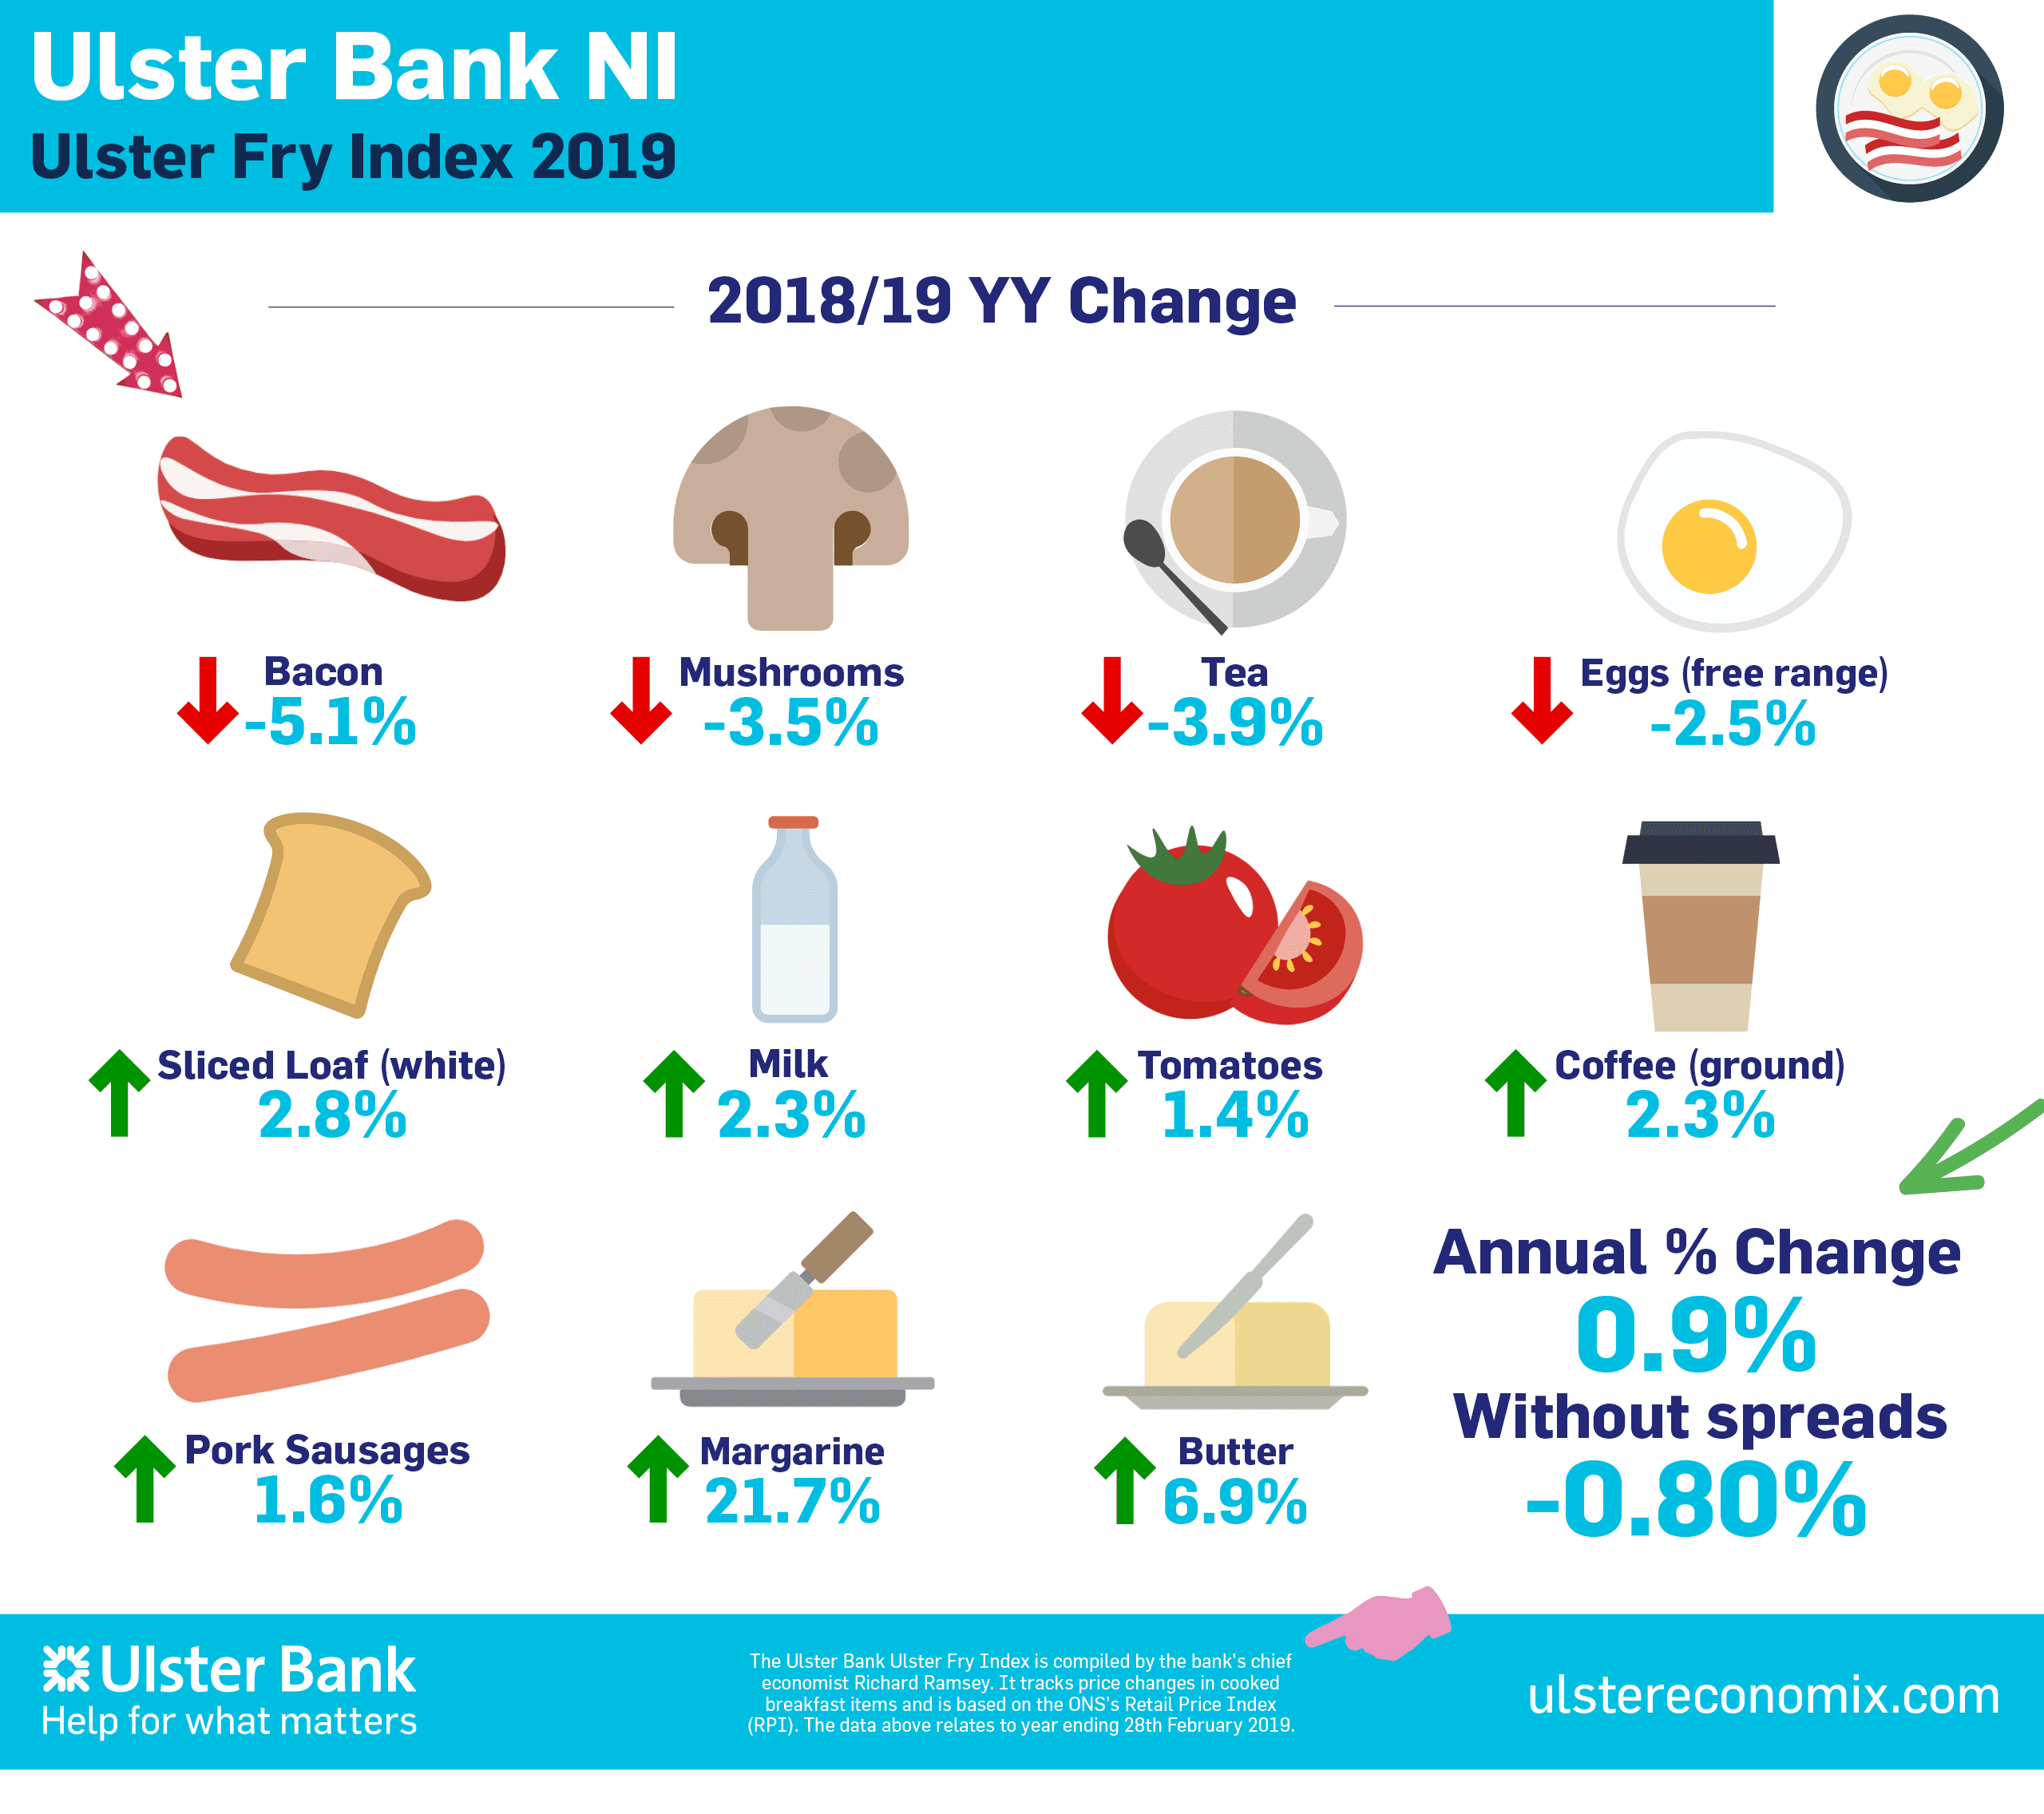 Ulster Bank Ulster Fry Index 2019